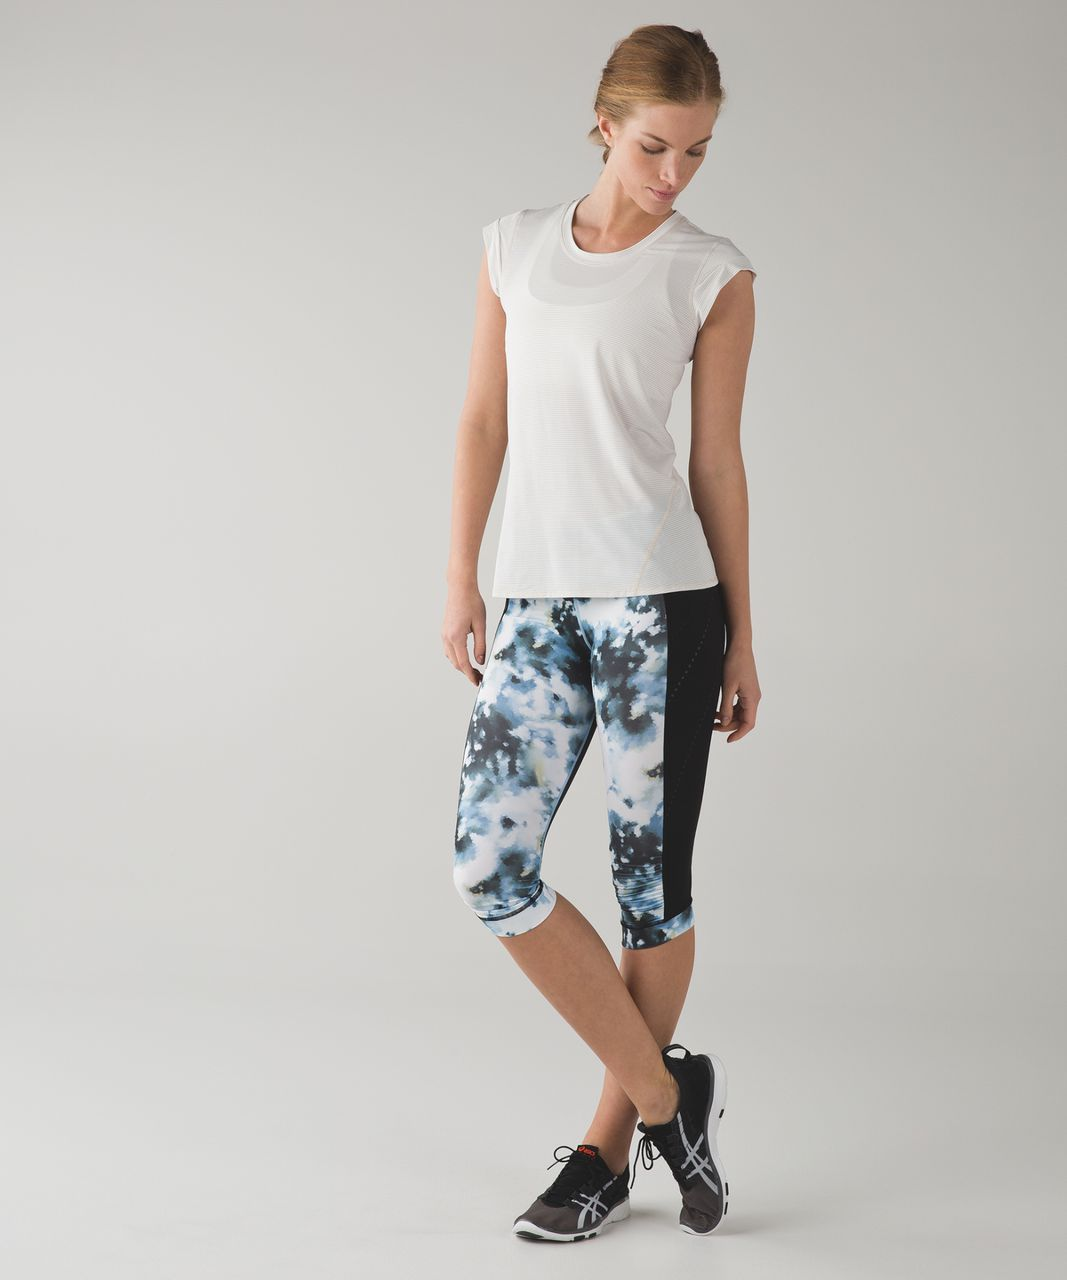 Lululemon Stop At Nothing Crop - Black / Mini Blooming Pixie Aquamarine Multi